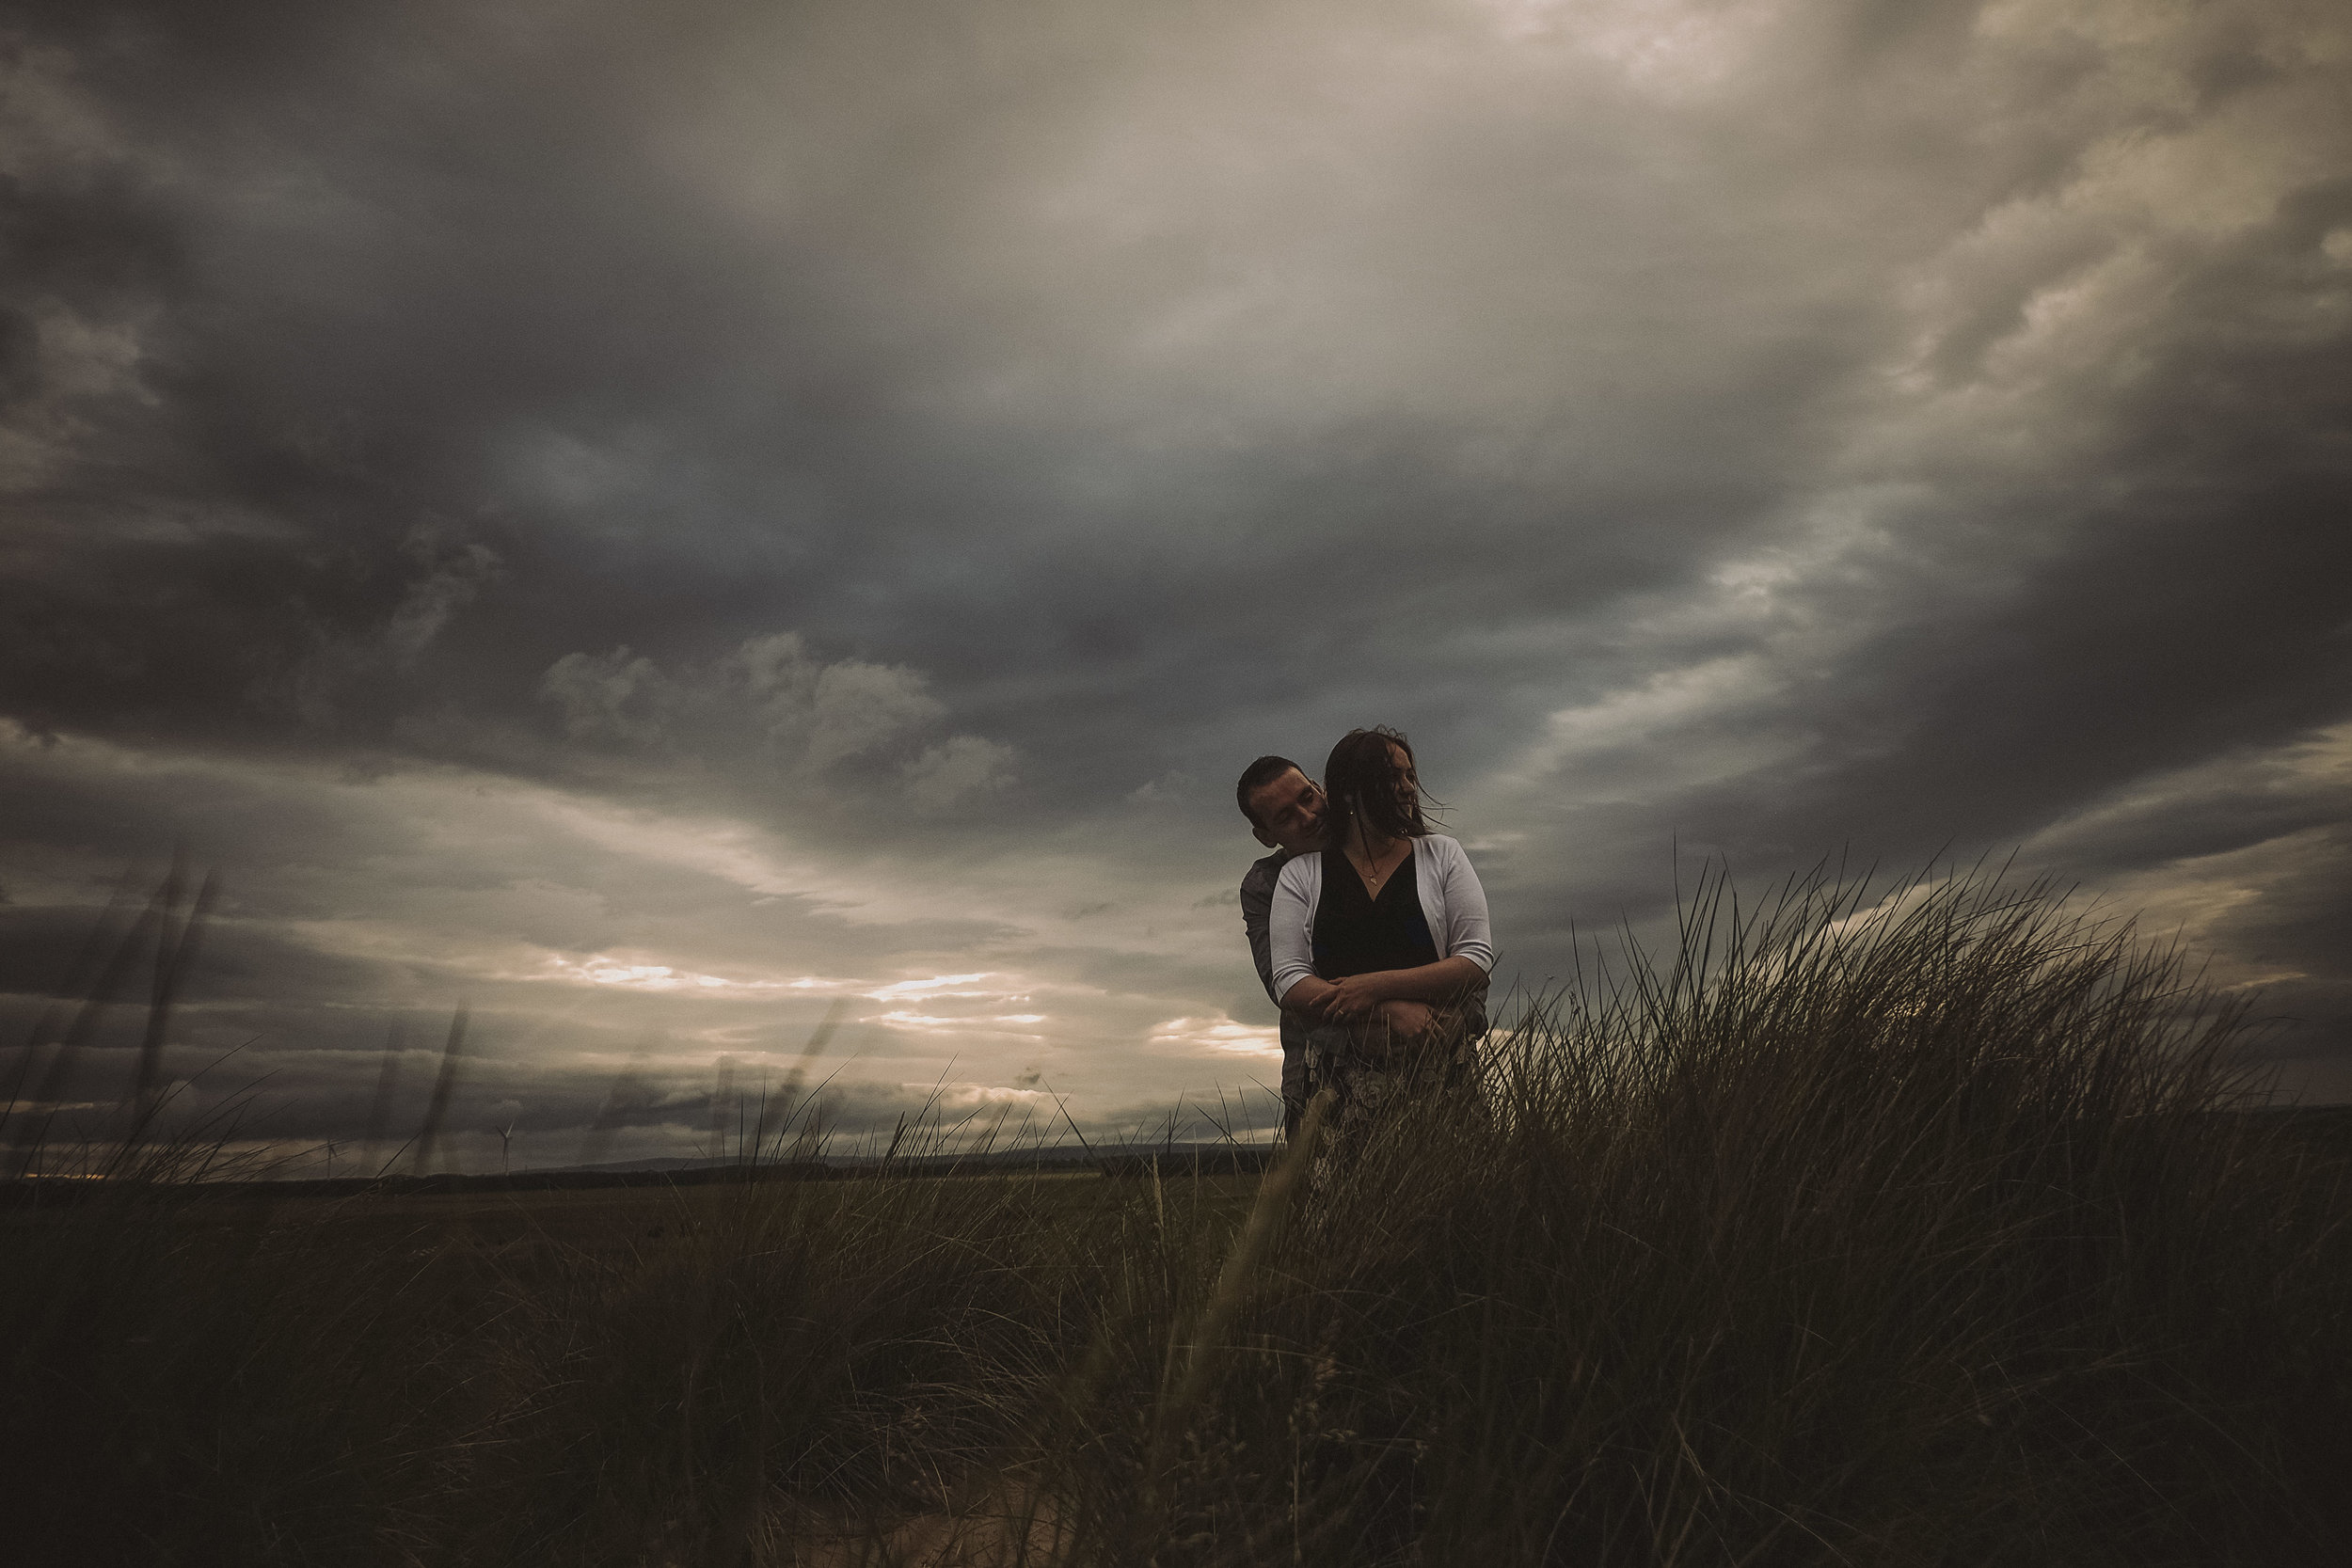 Dramatic photo of the bride and groom cuddling in the sand dunes with storm clouds above